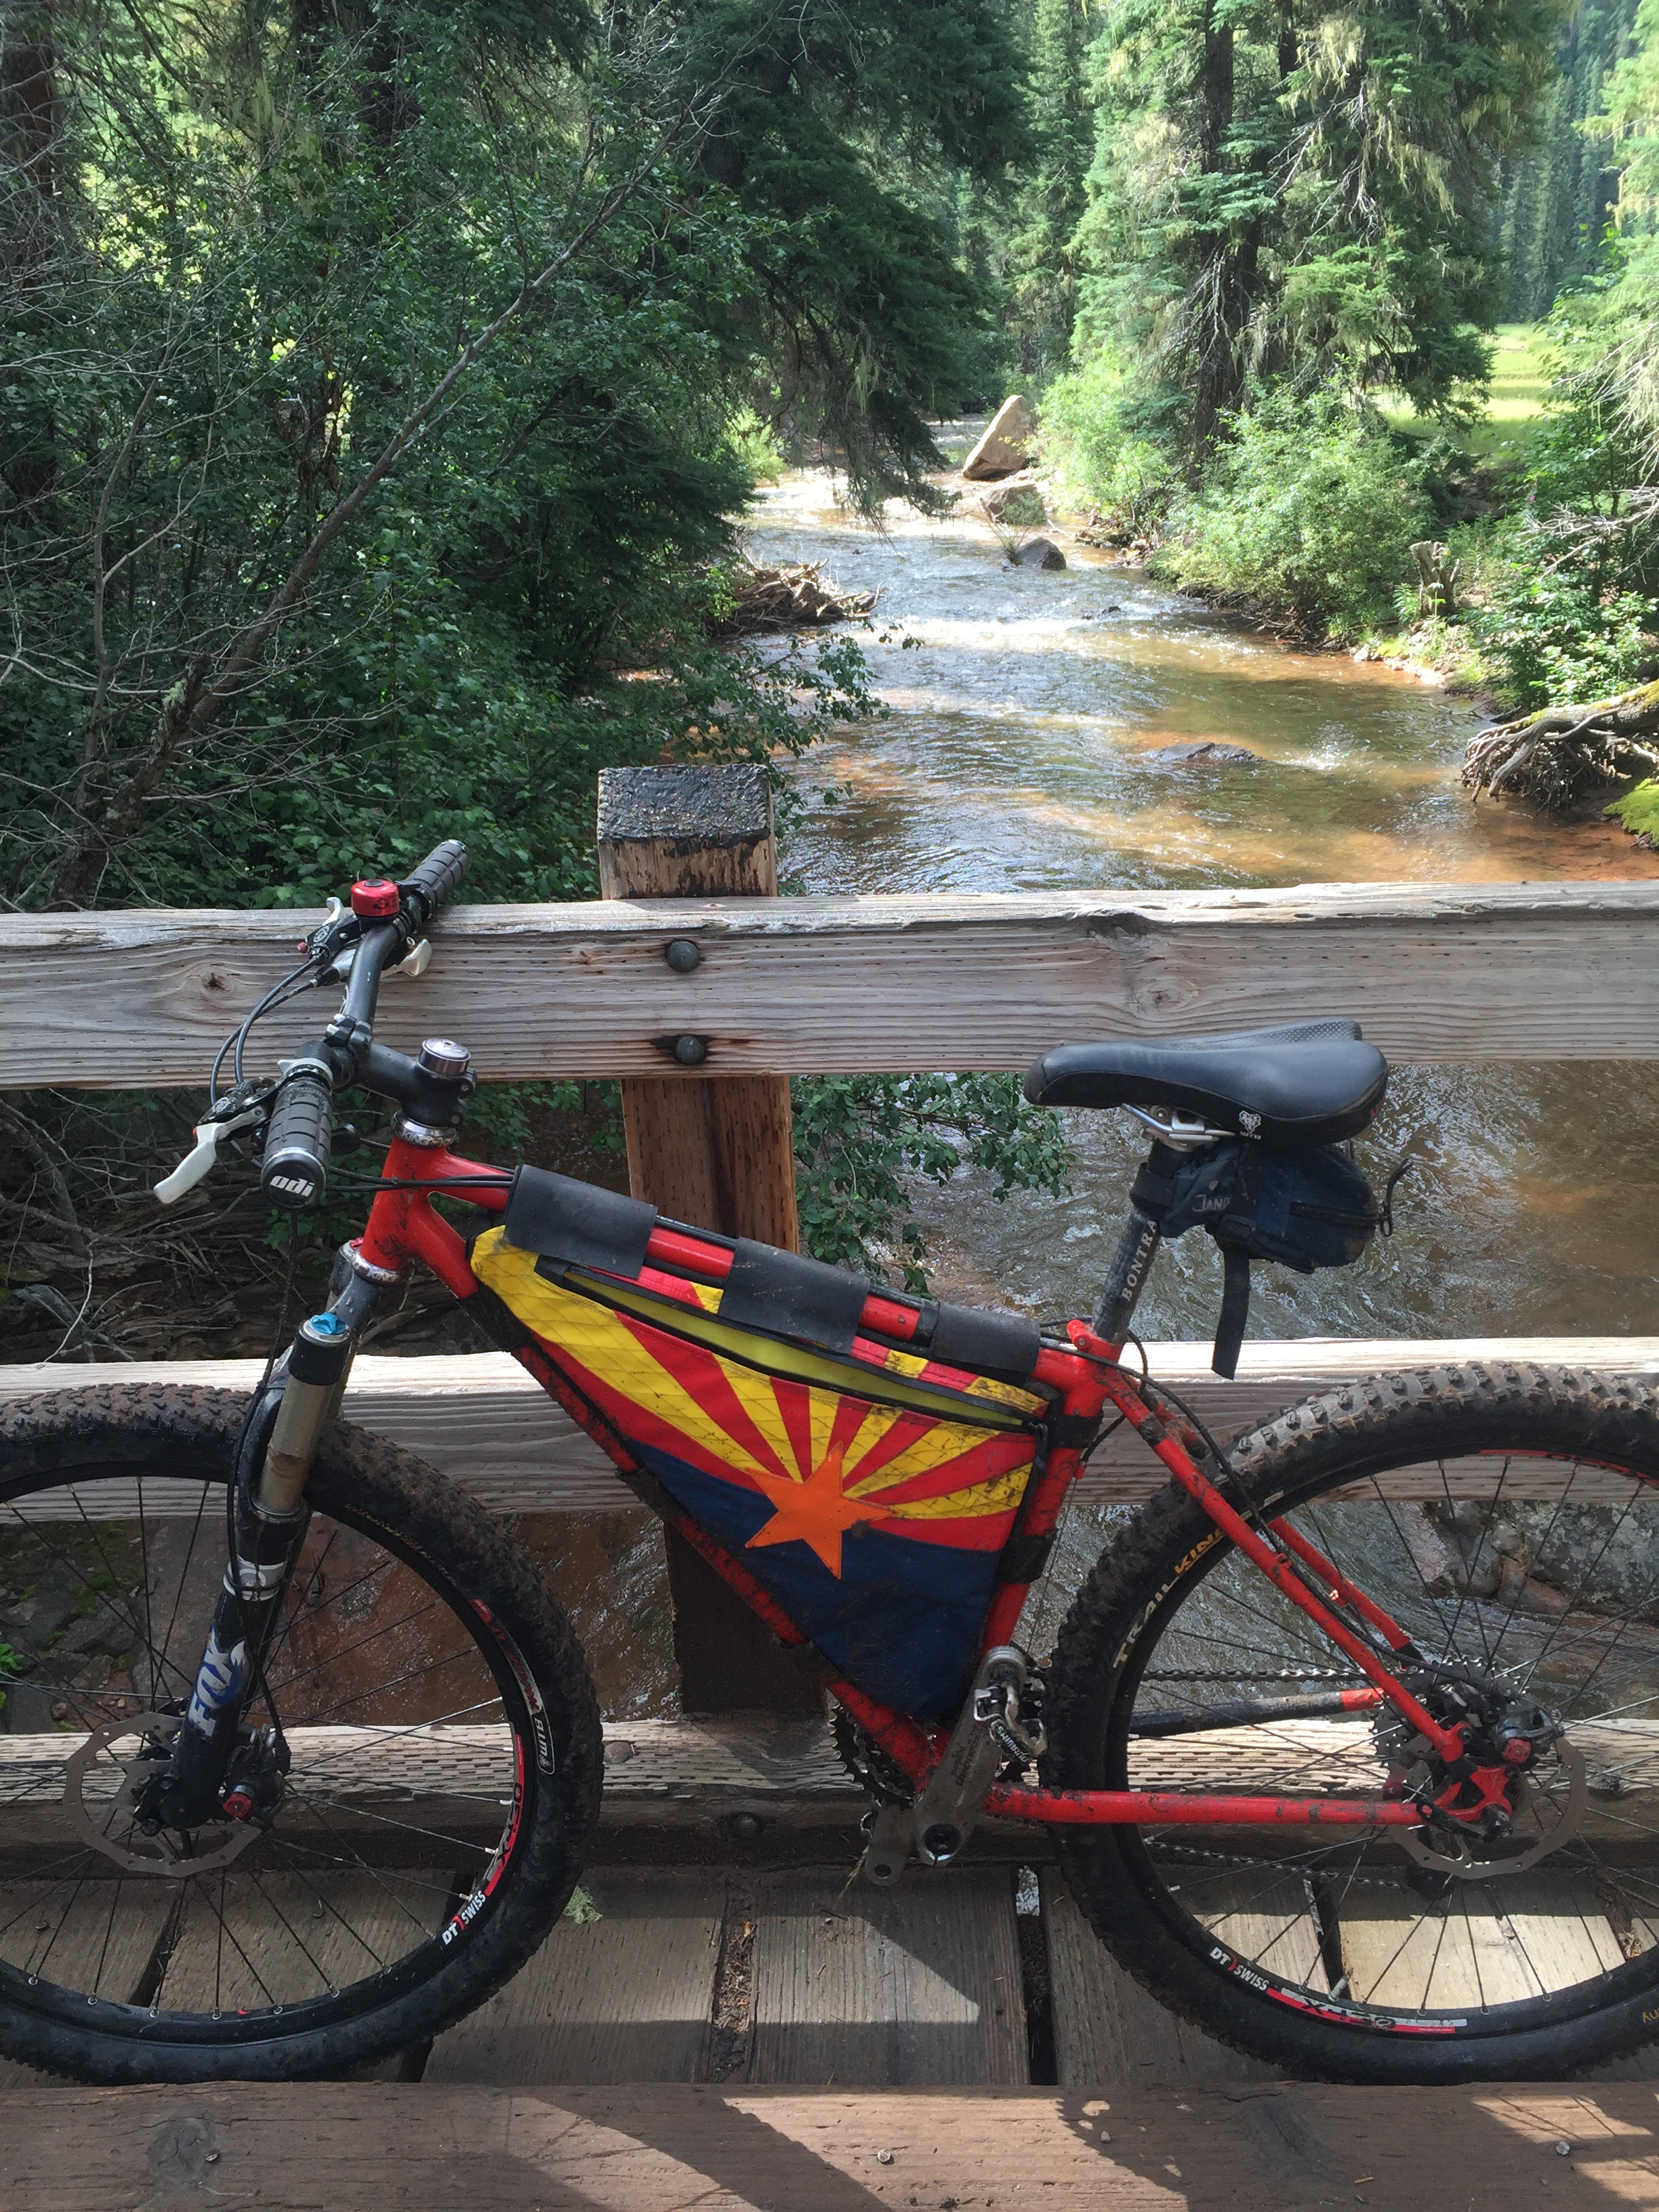 My steed, a top one of the many bridges along Hermosa Creek. Surface water is a huge treat for us dry country folks.